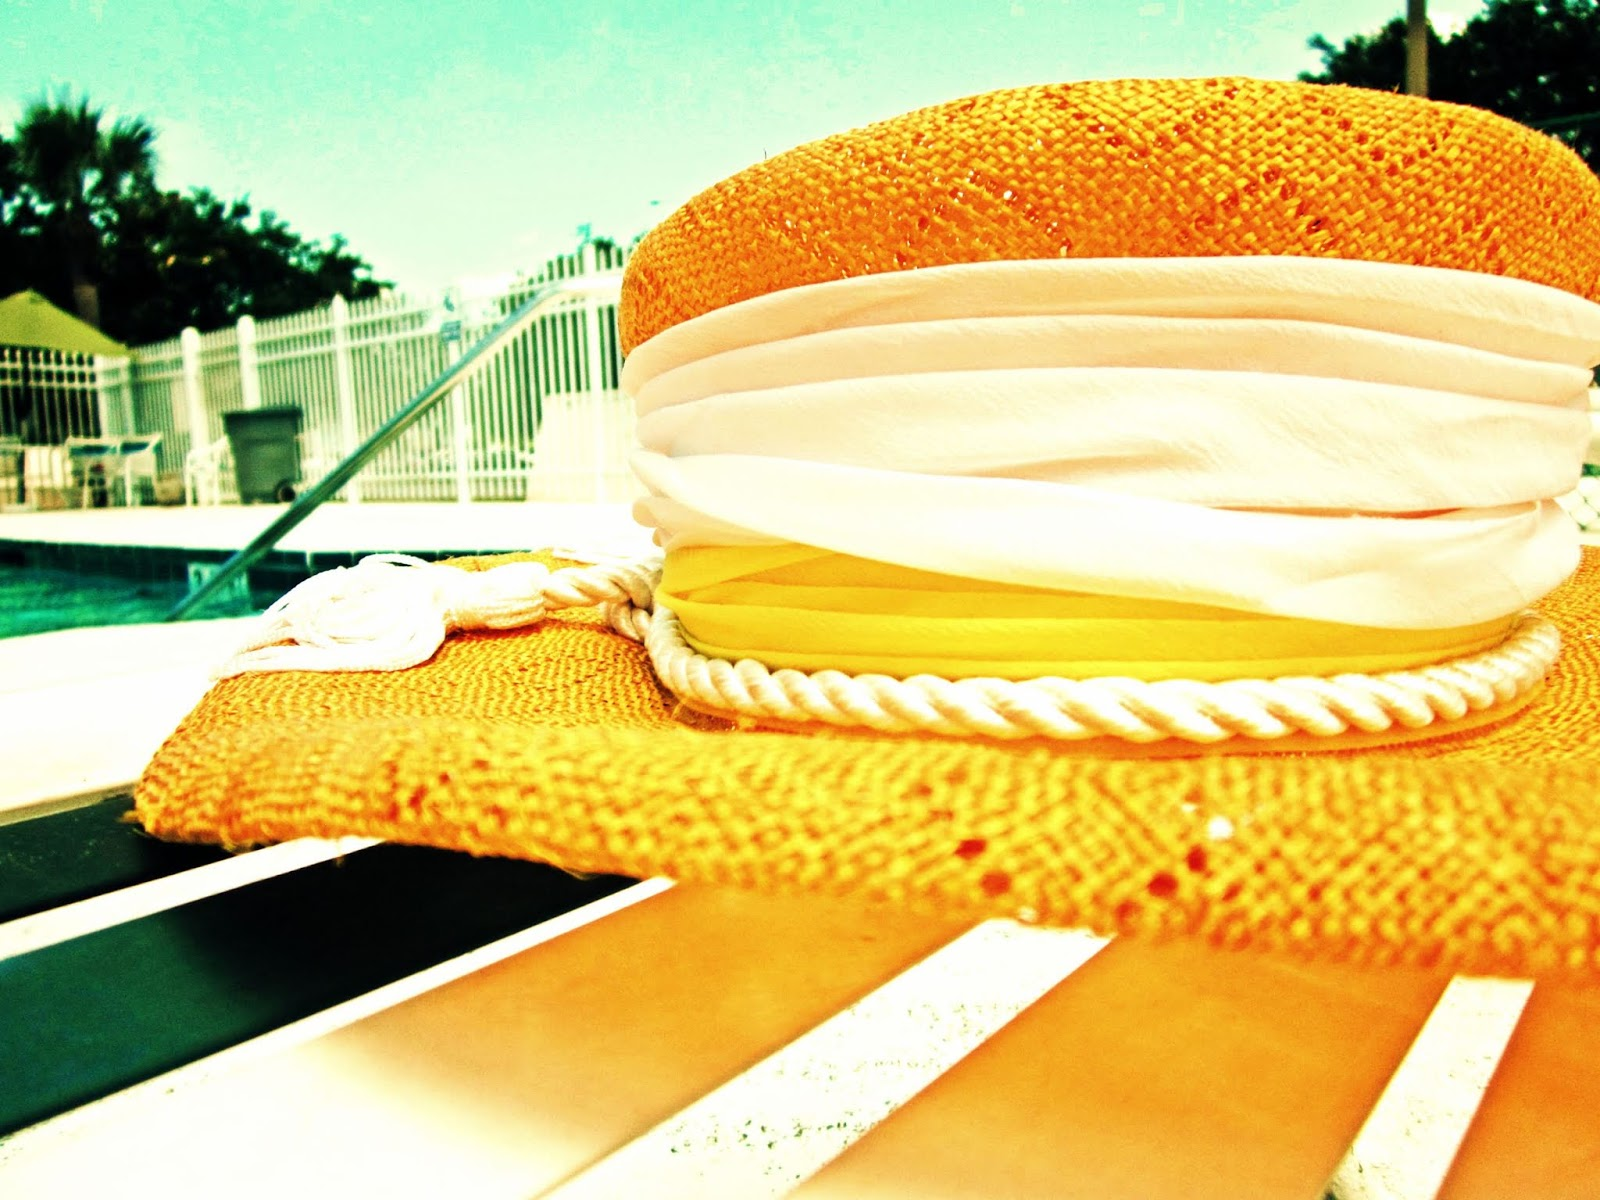 A vintage yellow sunhat by the swimming pool in Florida